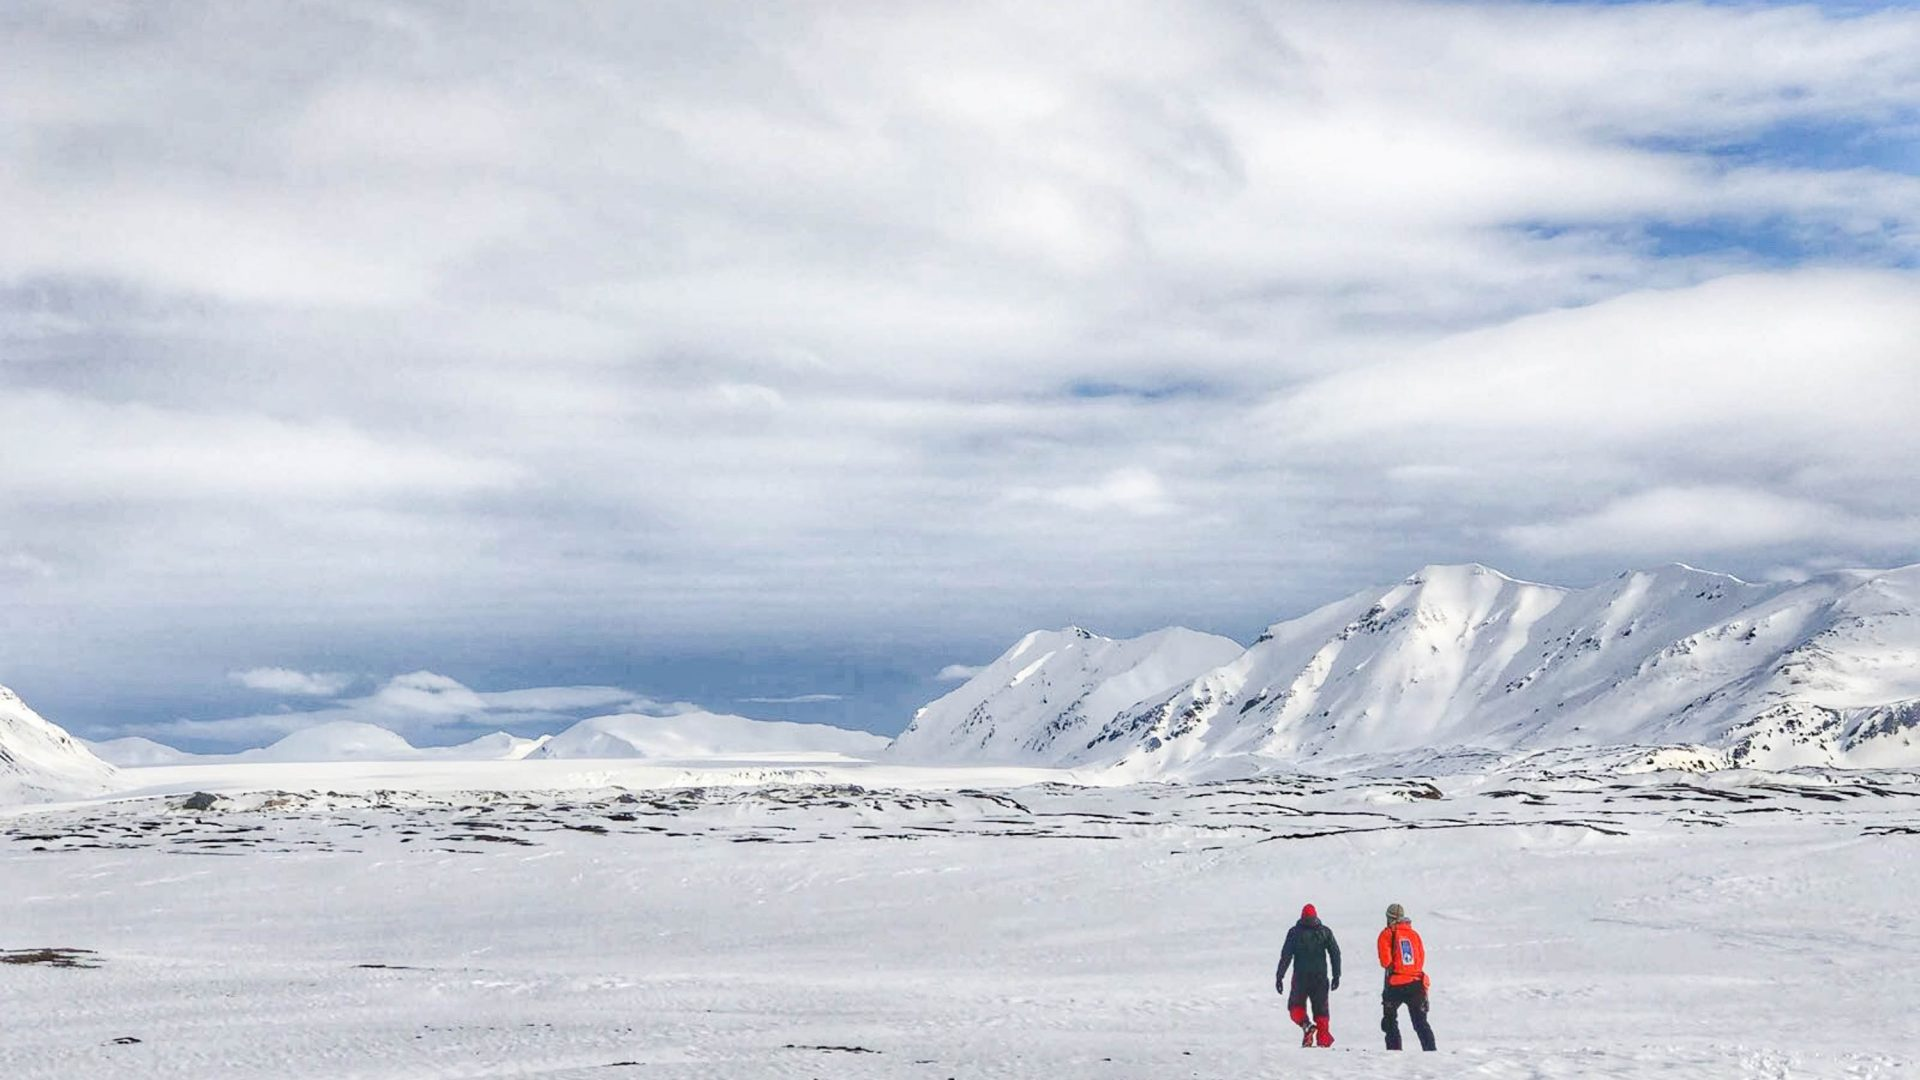 Leon and his guide Nils walking toward a glacier on the island of Spitbergen.